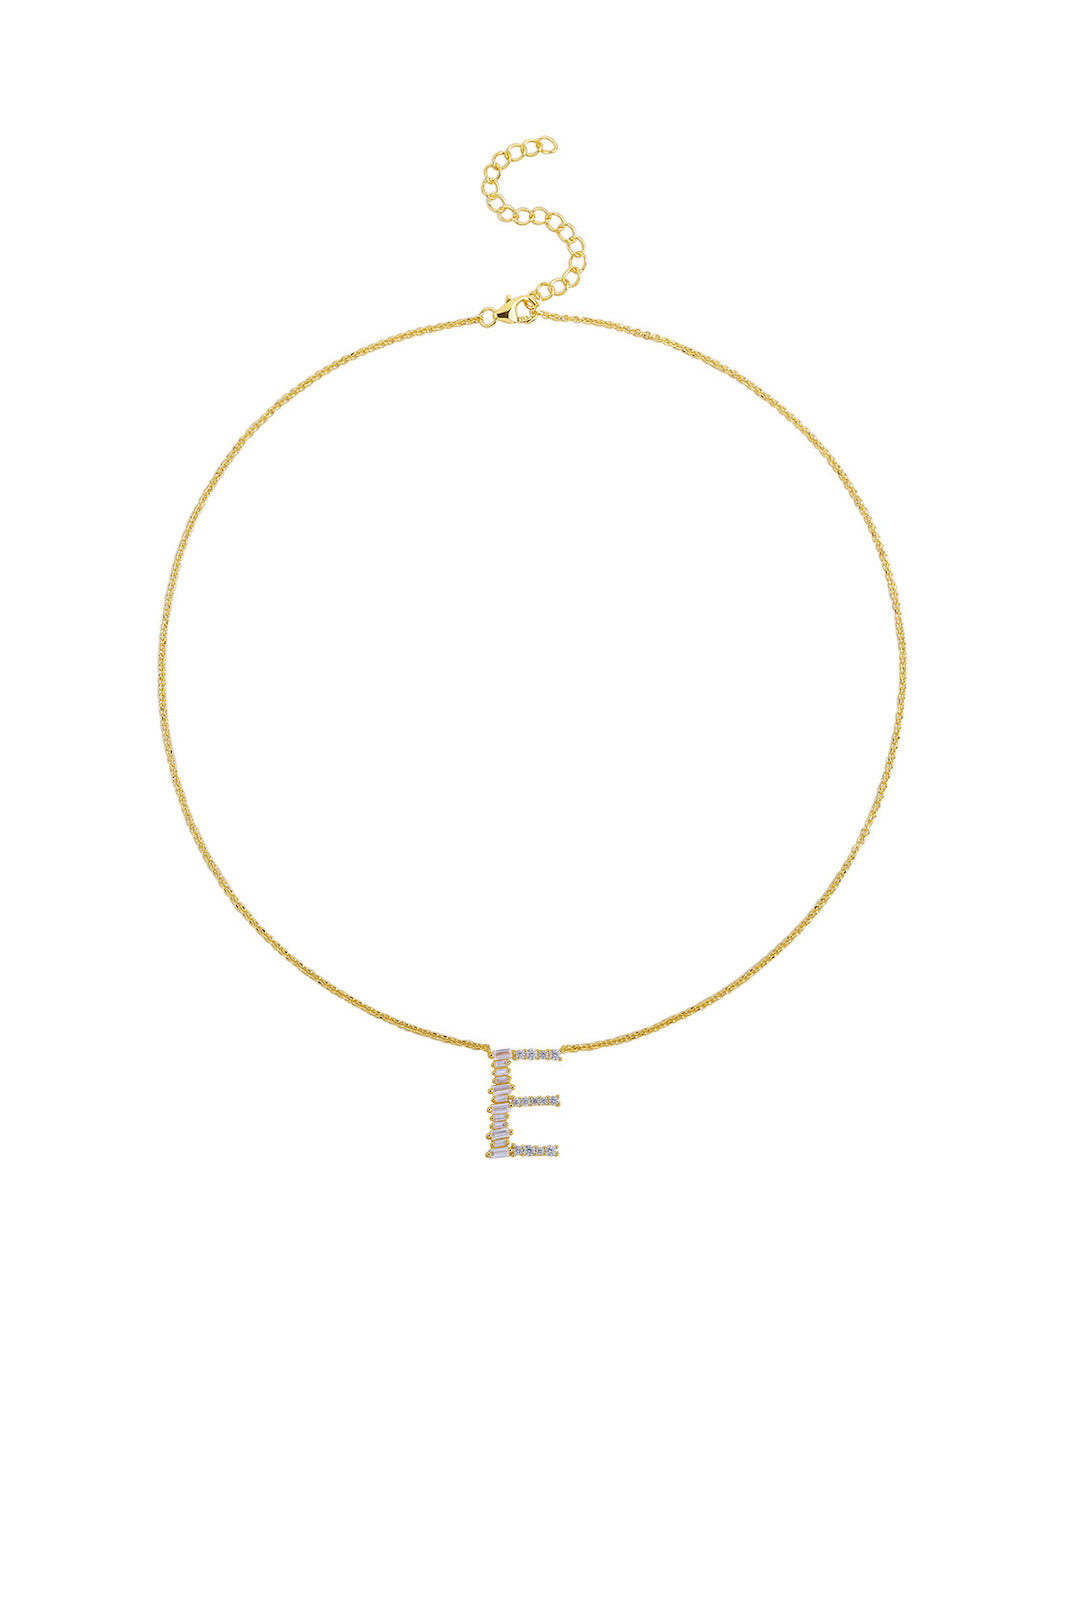 Gold Plated Sterling Silver Initial Necklace - Letter E Detail